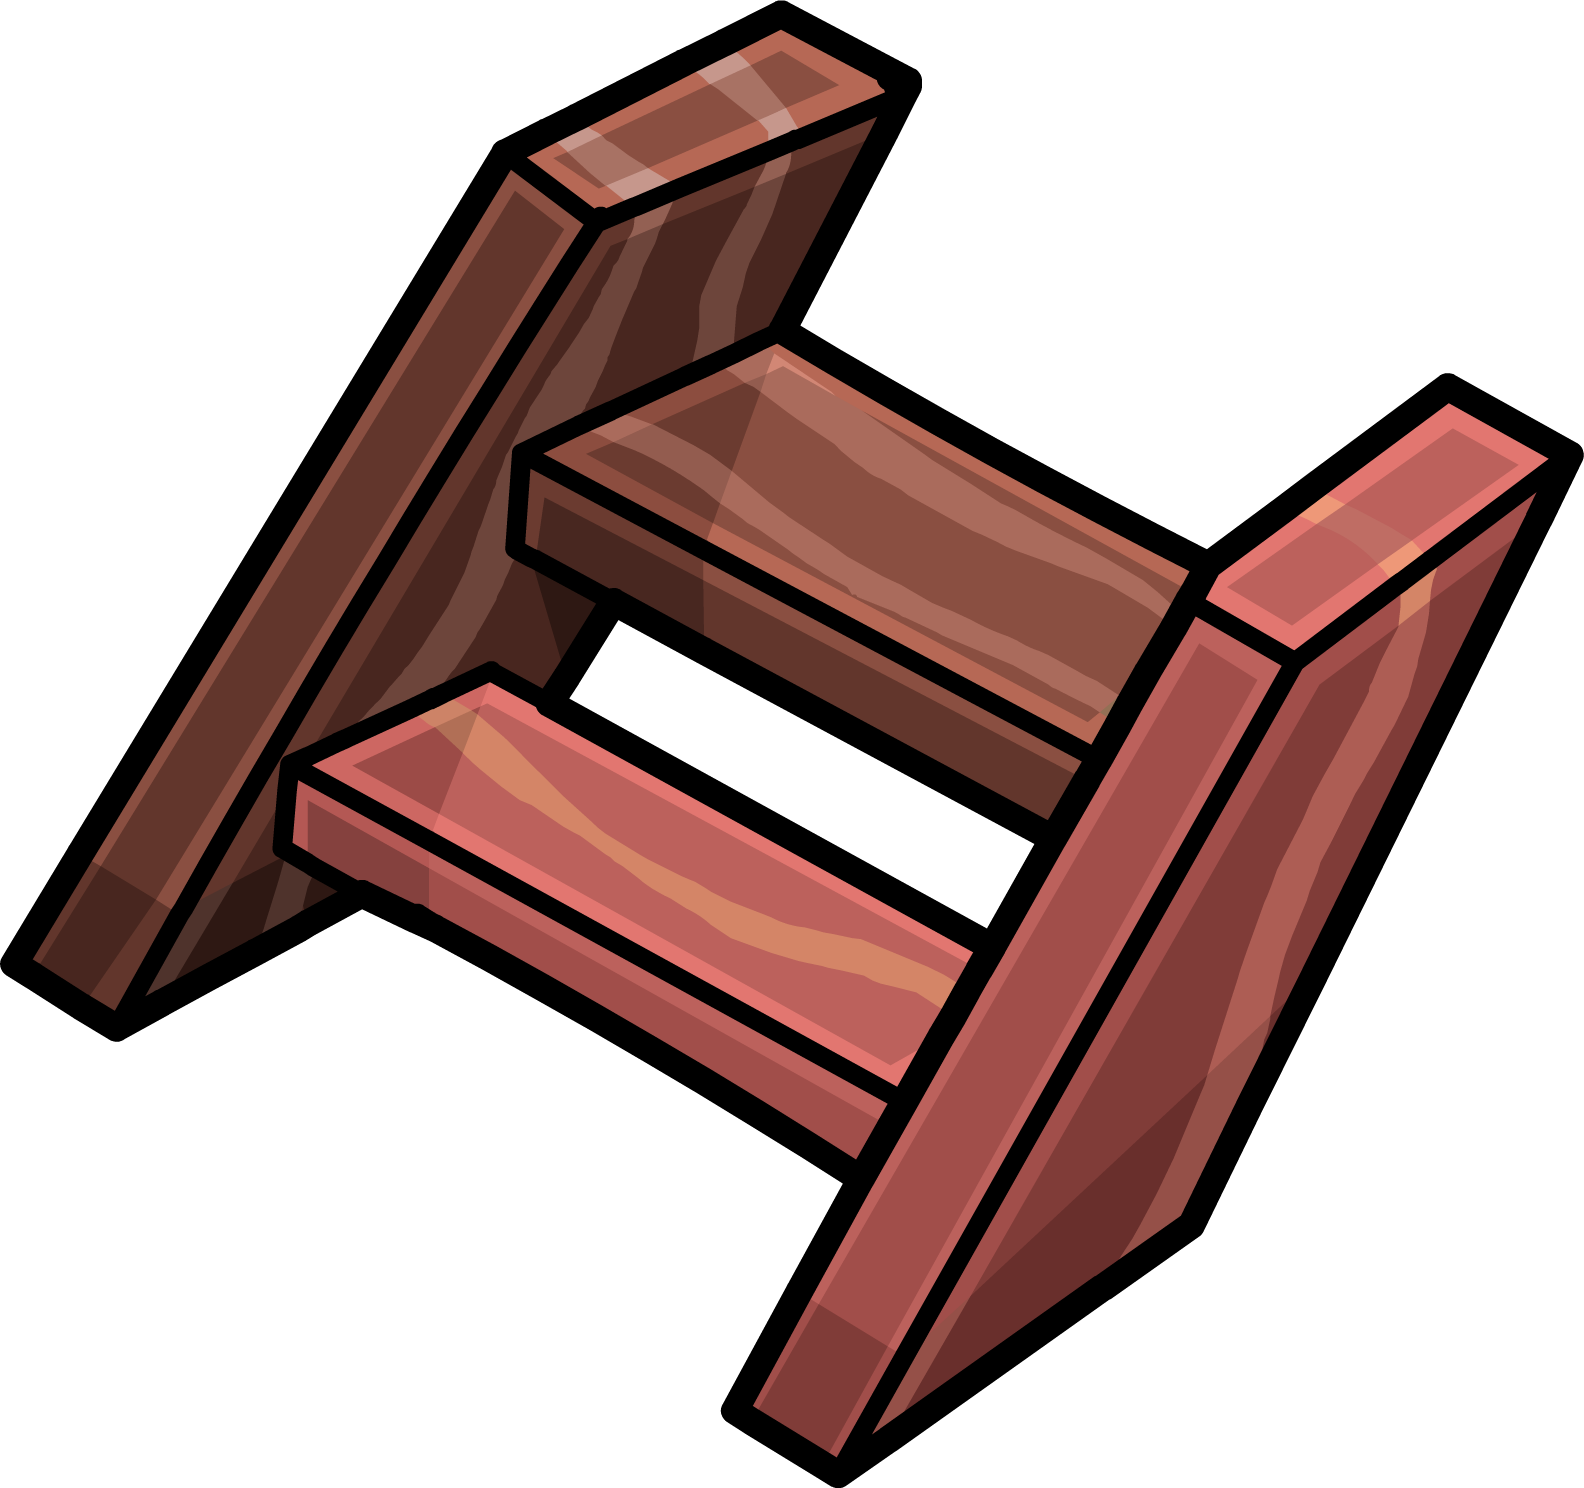 Staircase clipart red stair. Short wooden steps club